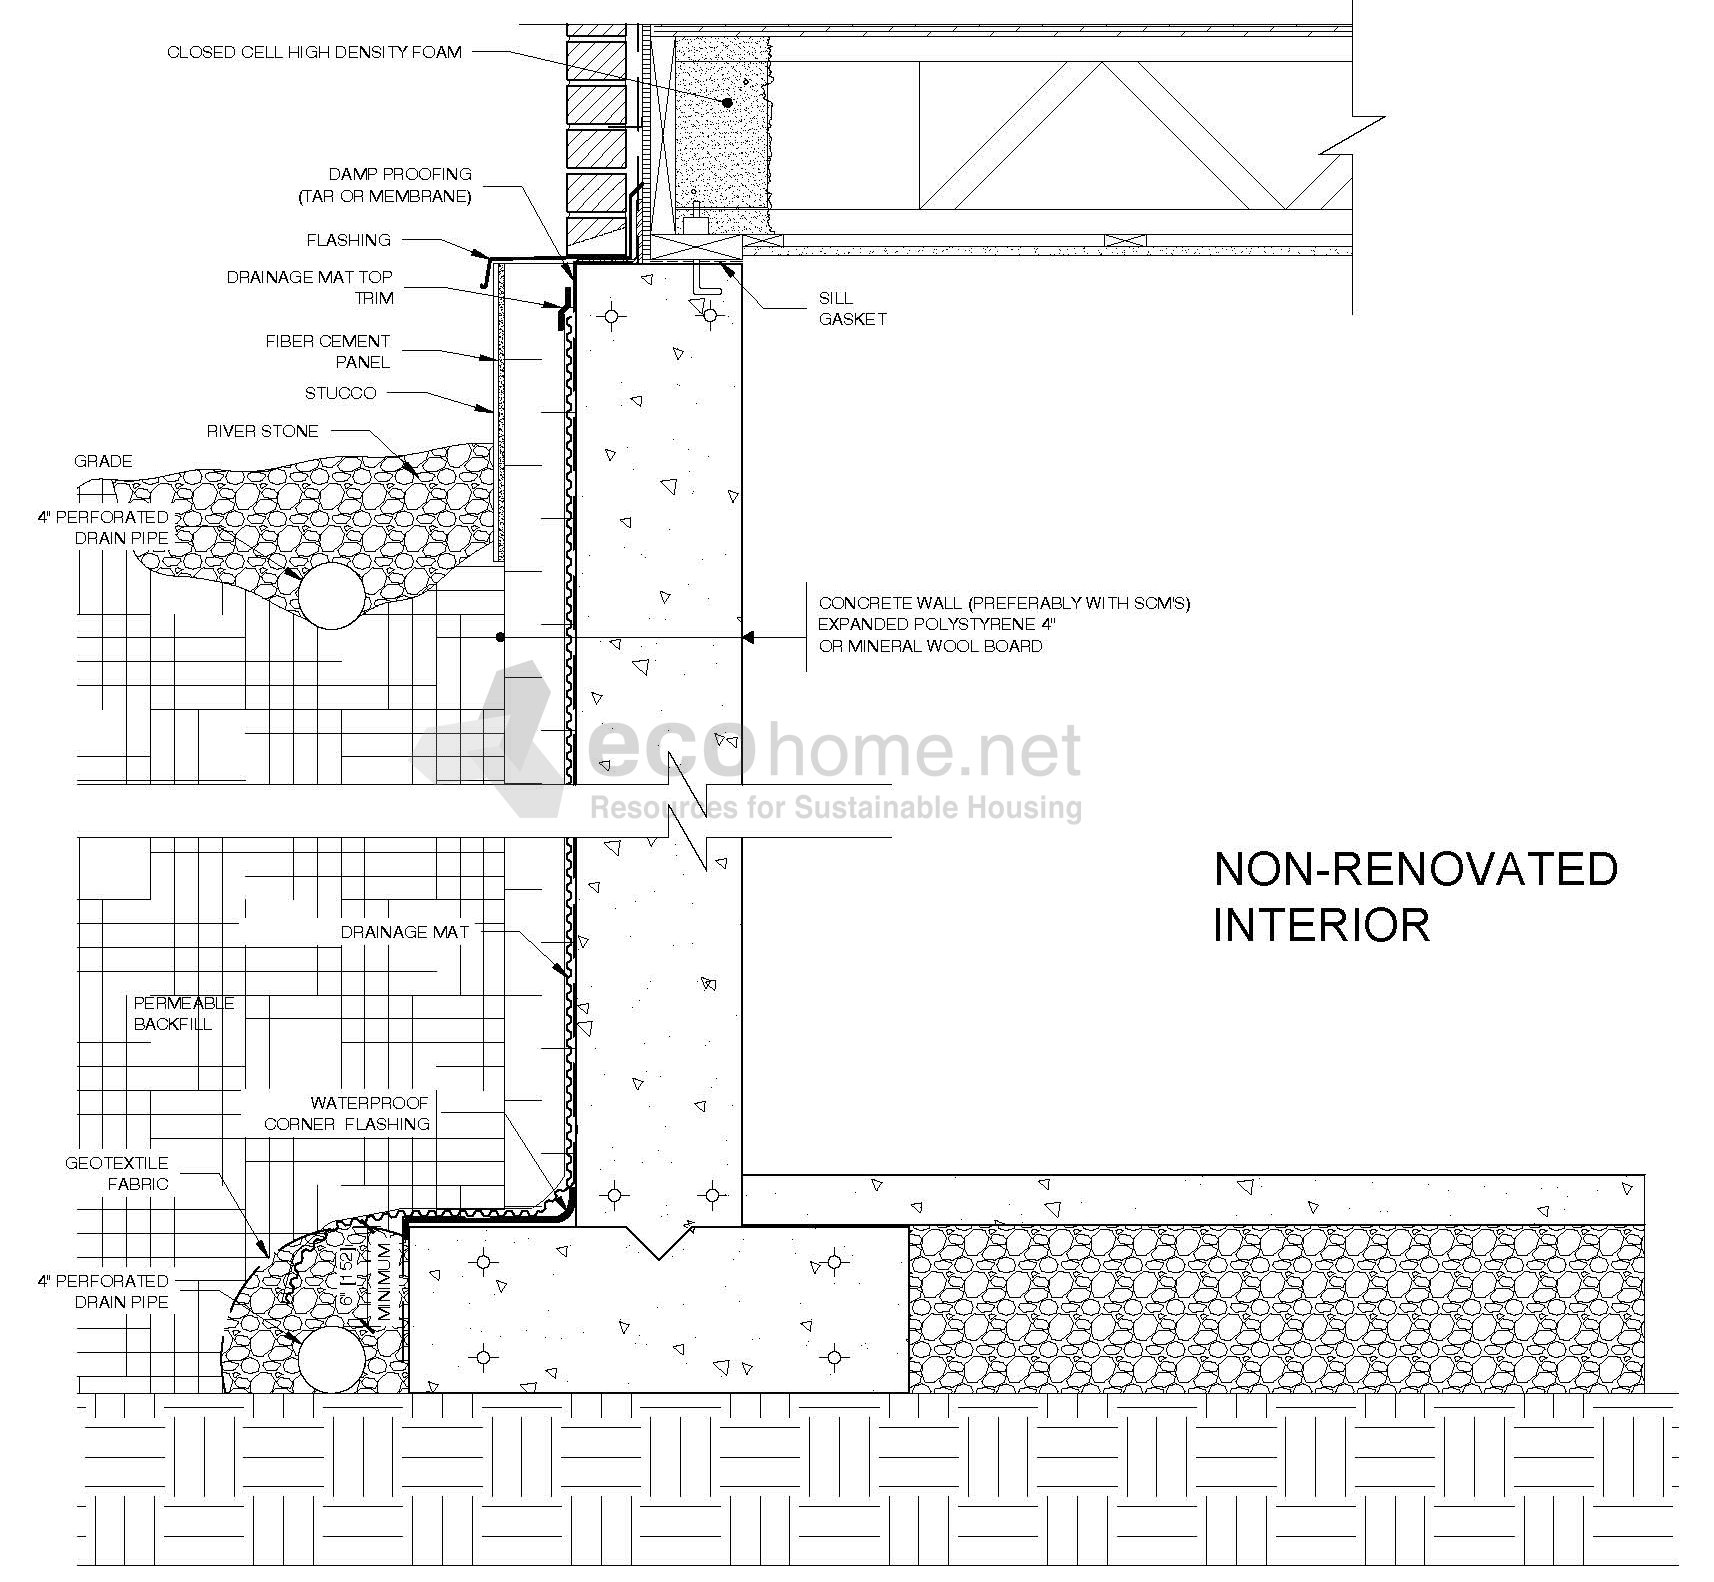 plumbing diagram for house  non renovated interior with